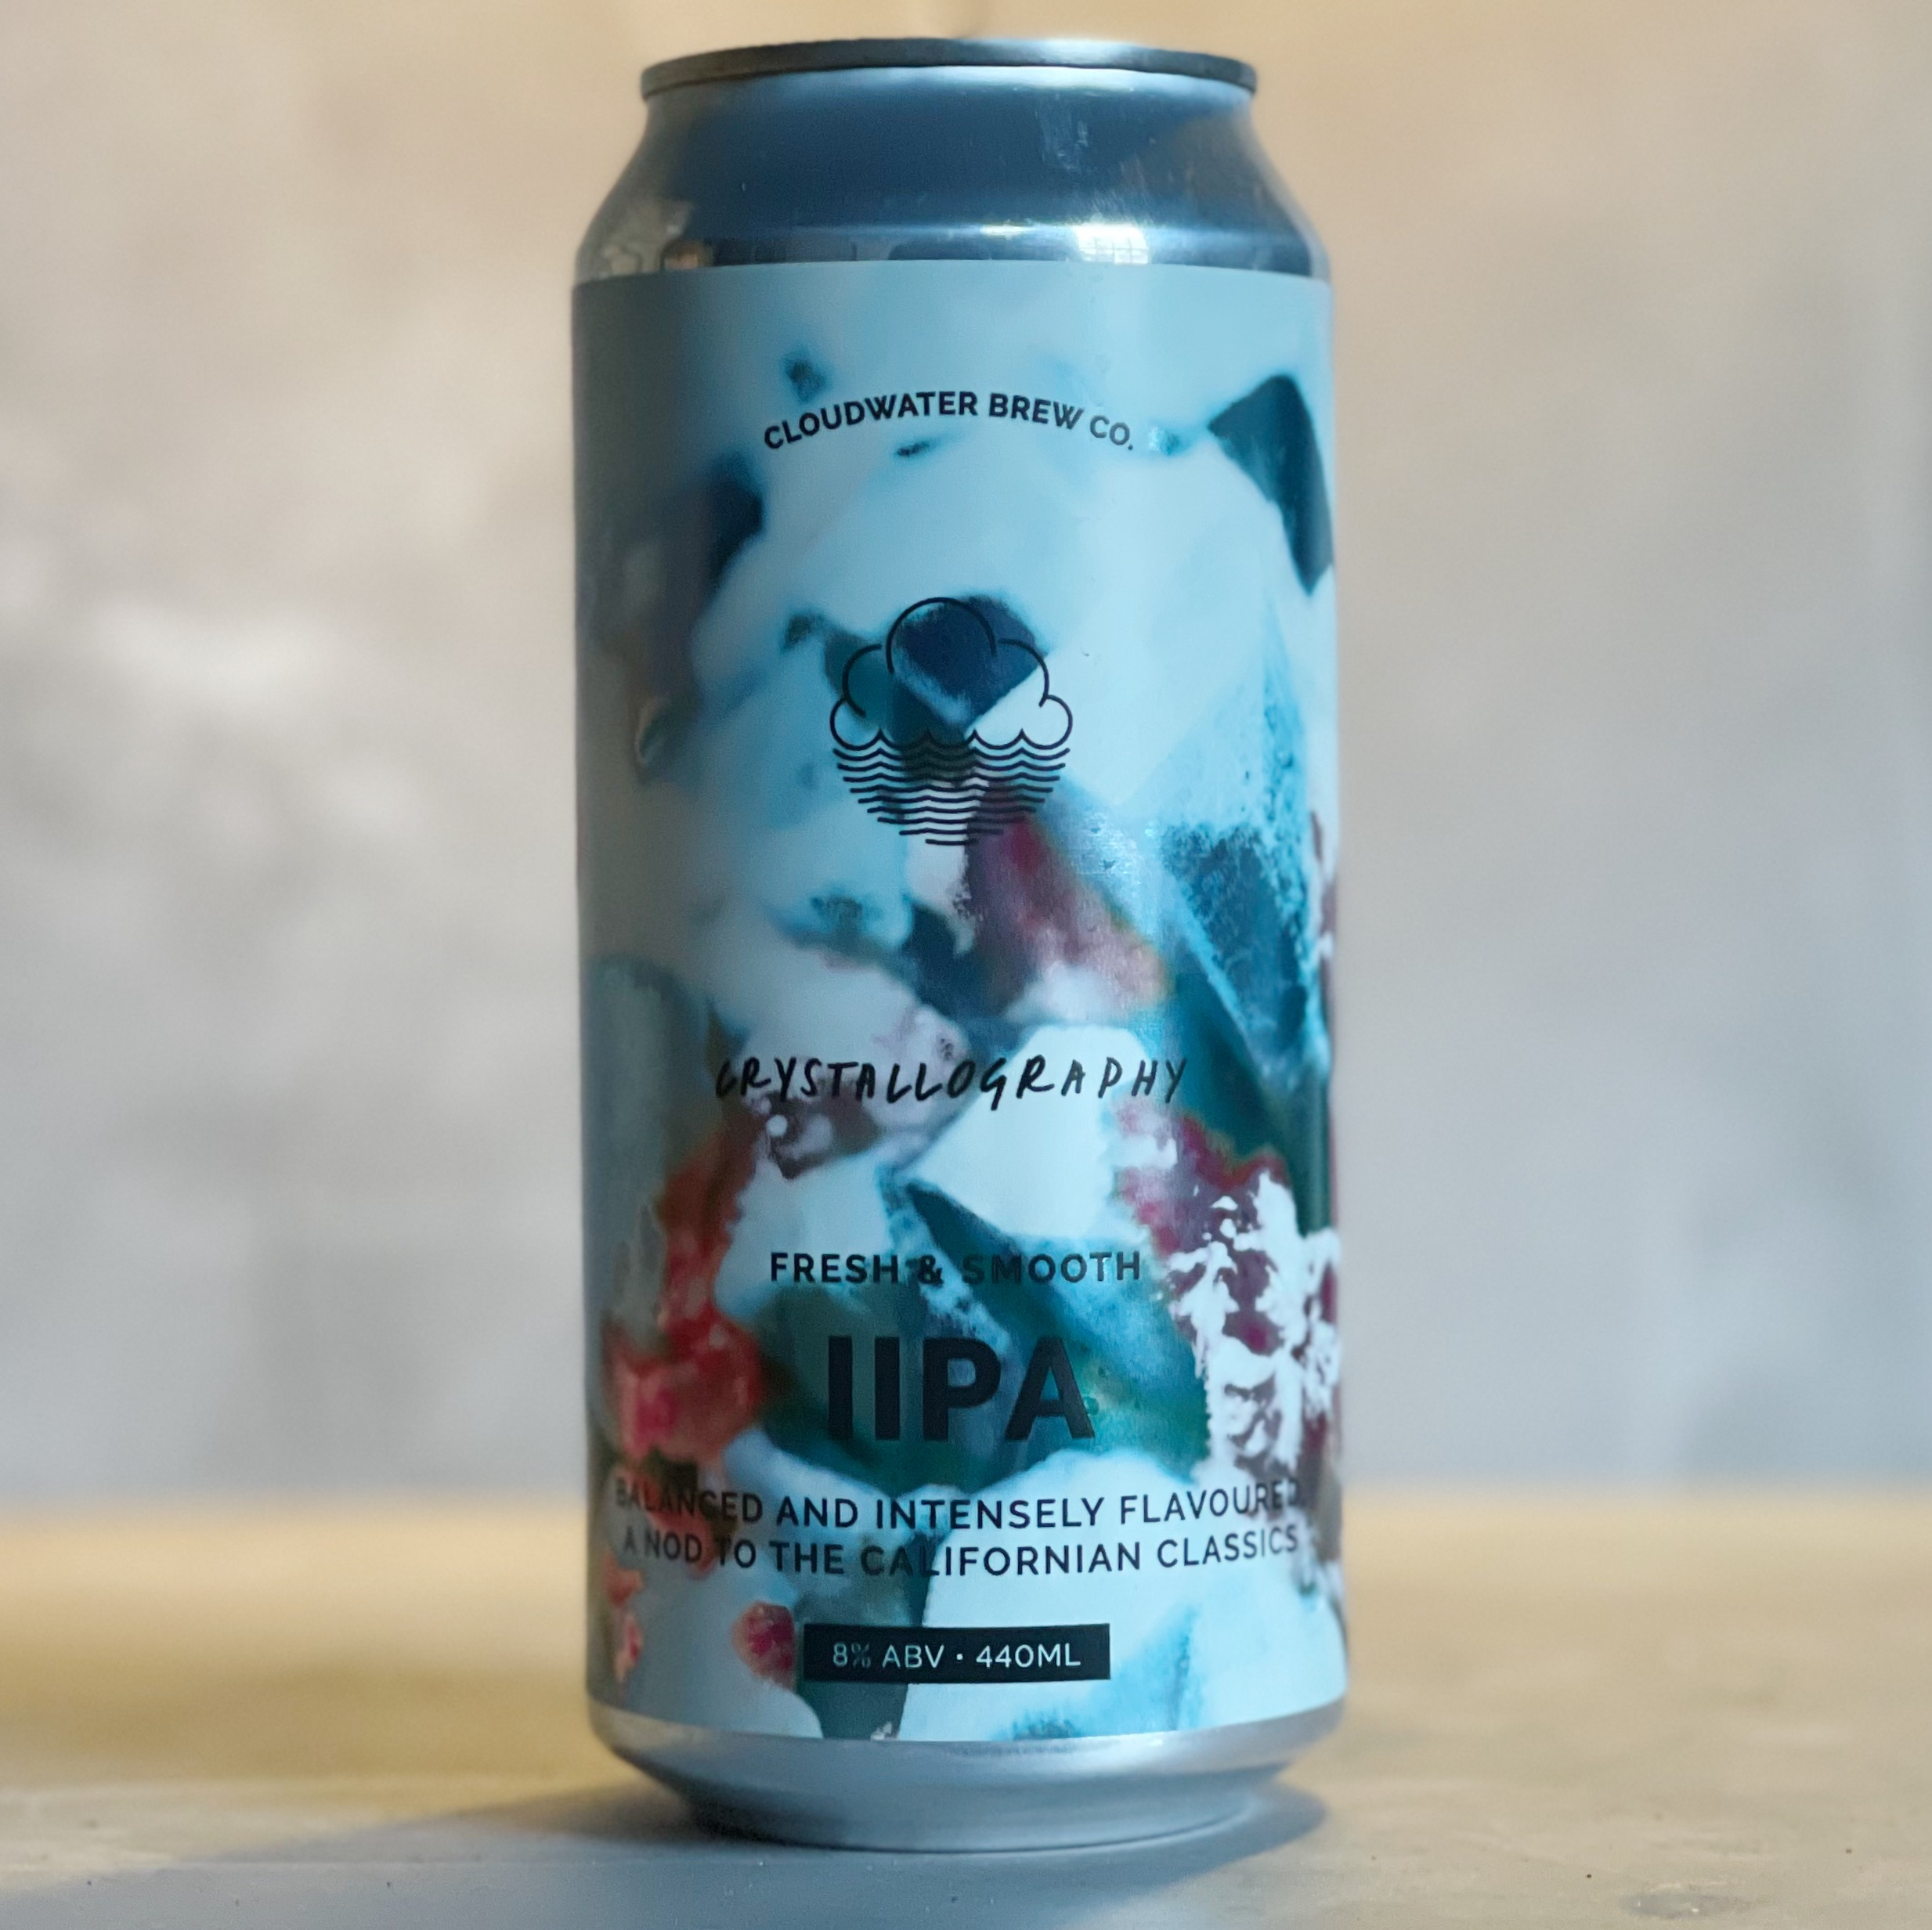 CLOUDWATER | CRYSTALLOGRAPHY | 8% ABV | 440ML